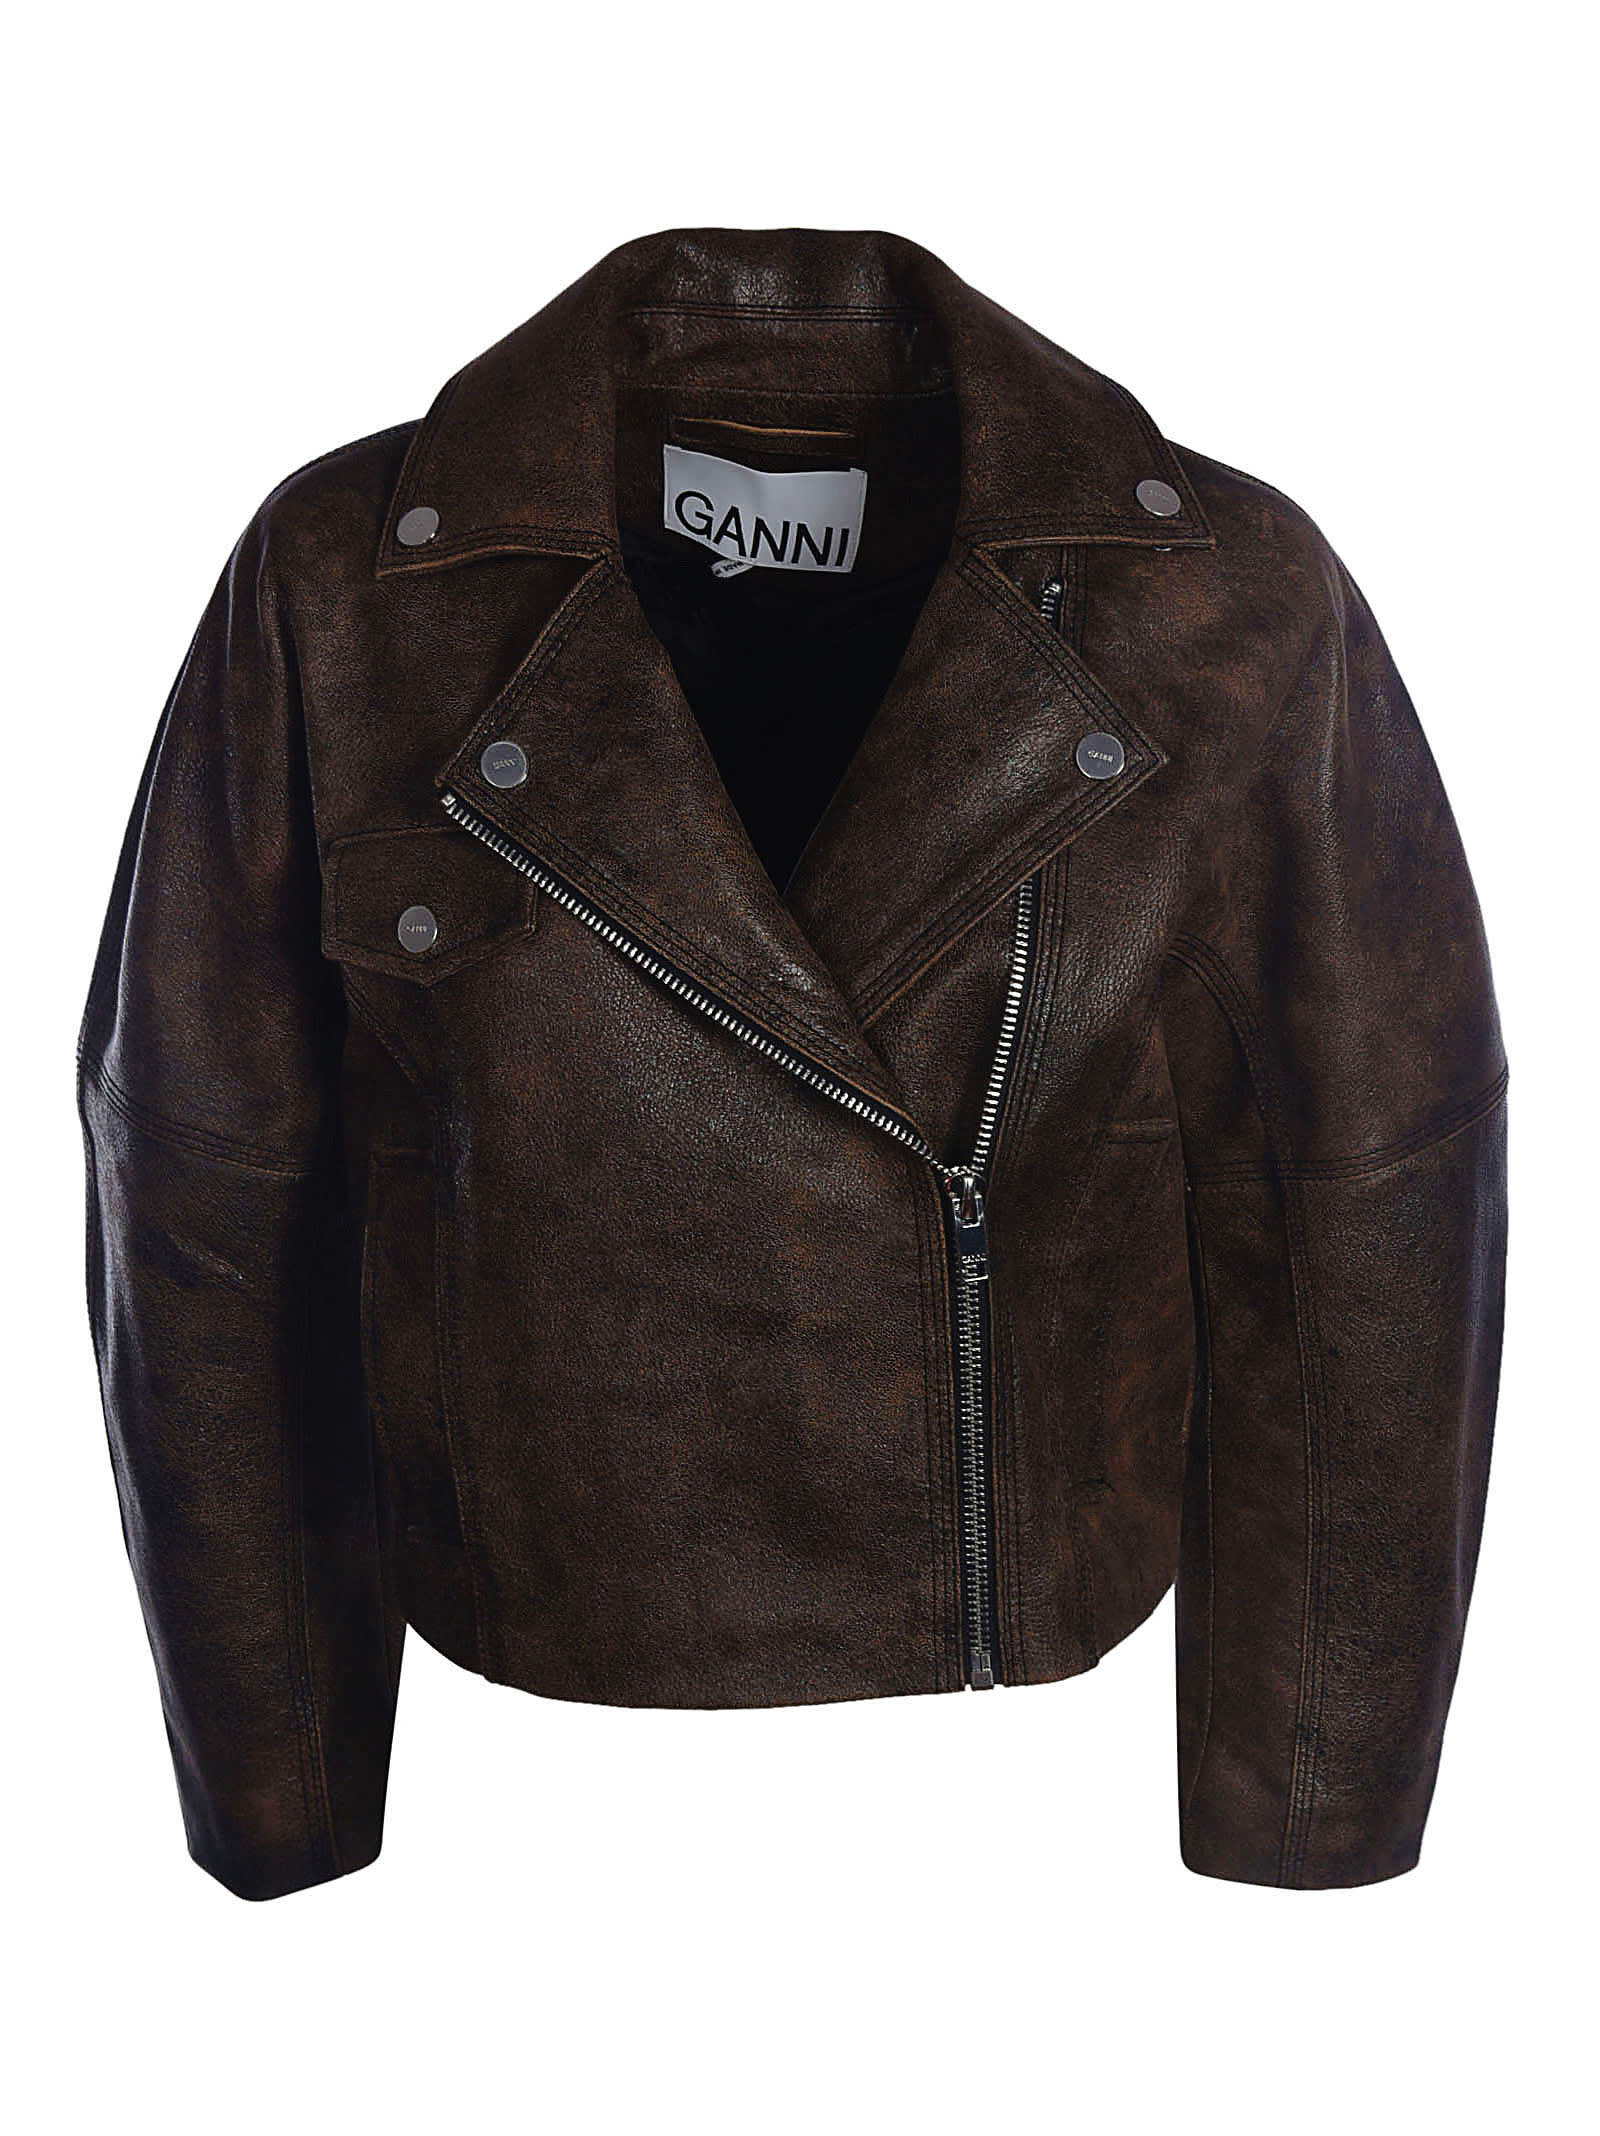 GANNI Leathers WASHED LEATHER JACKET